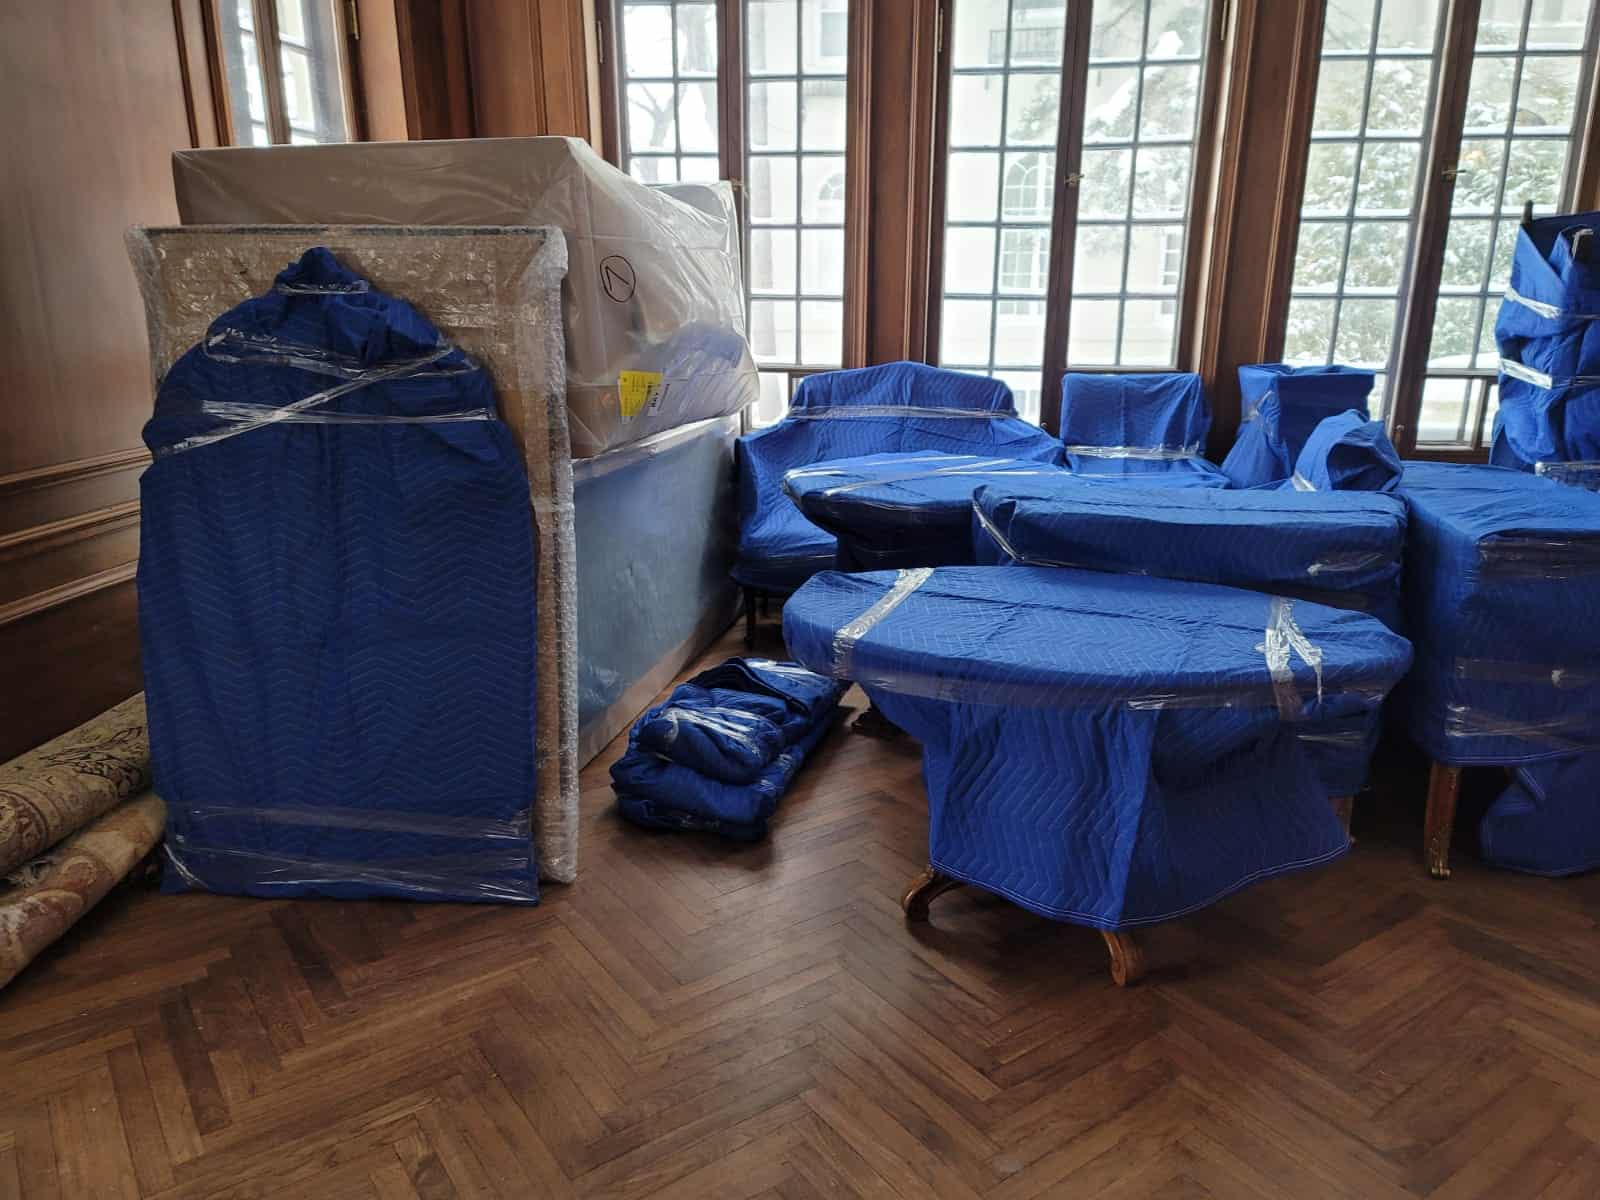 Furniture assembly and furniture wrapping